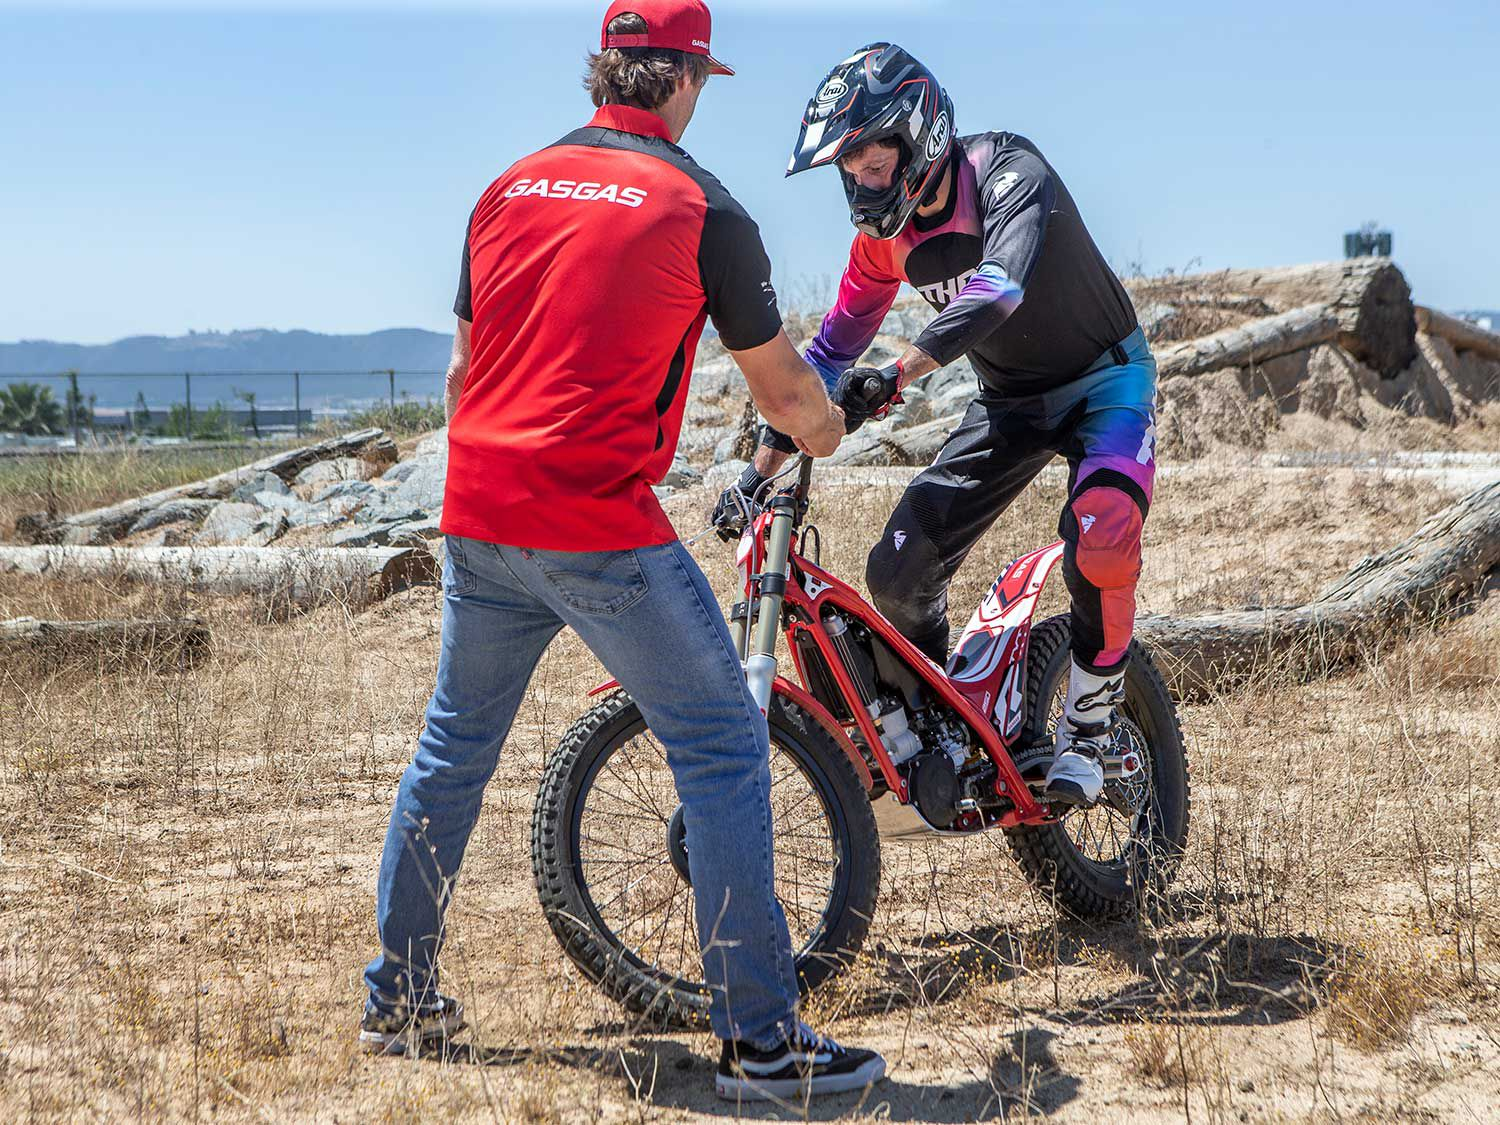 The riding stance on a trials bike is much different than a traditional off-road motorcycle. A more mountain bike-like stance applies to trials.